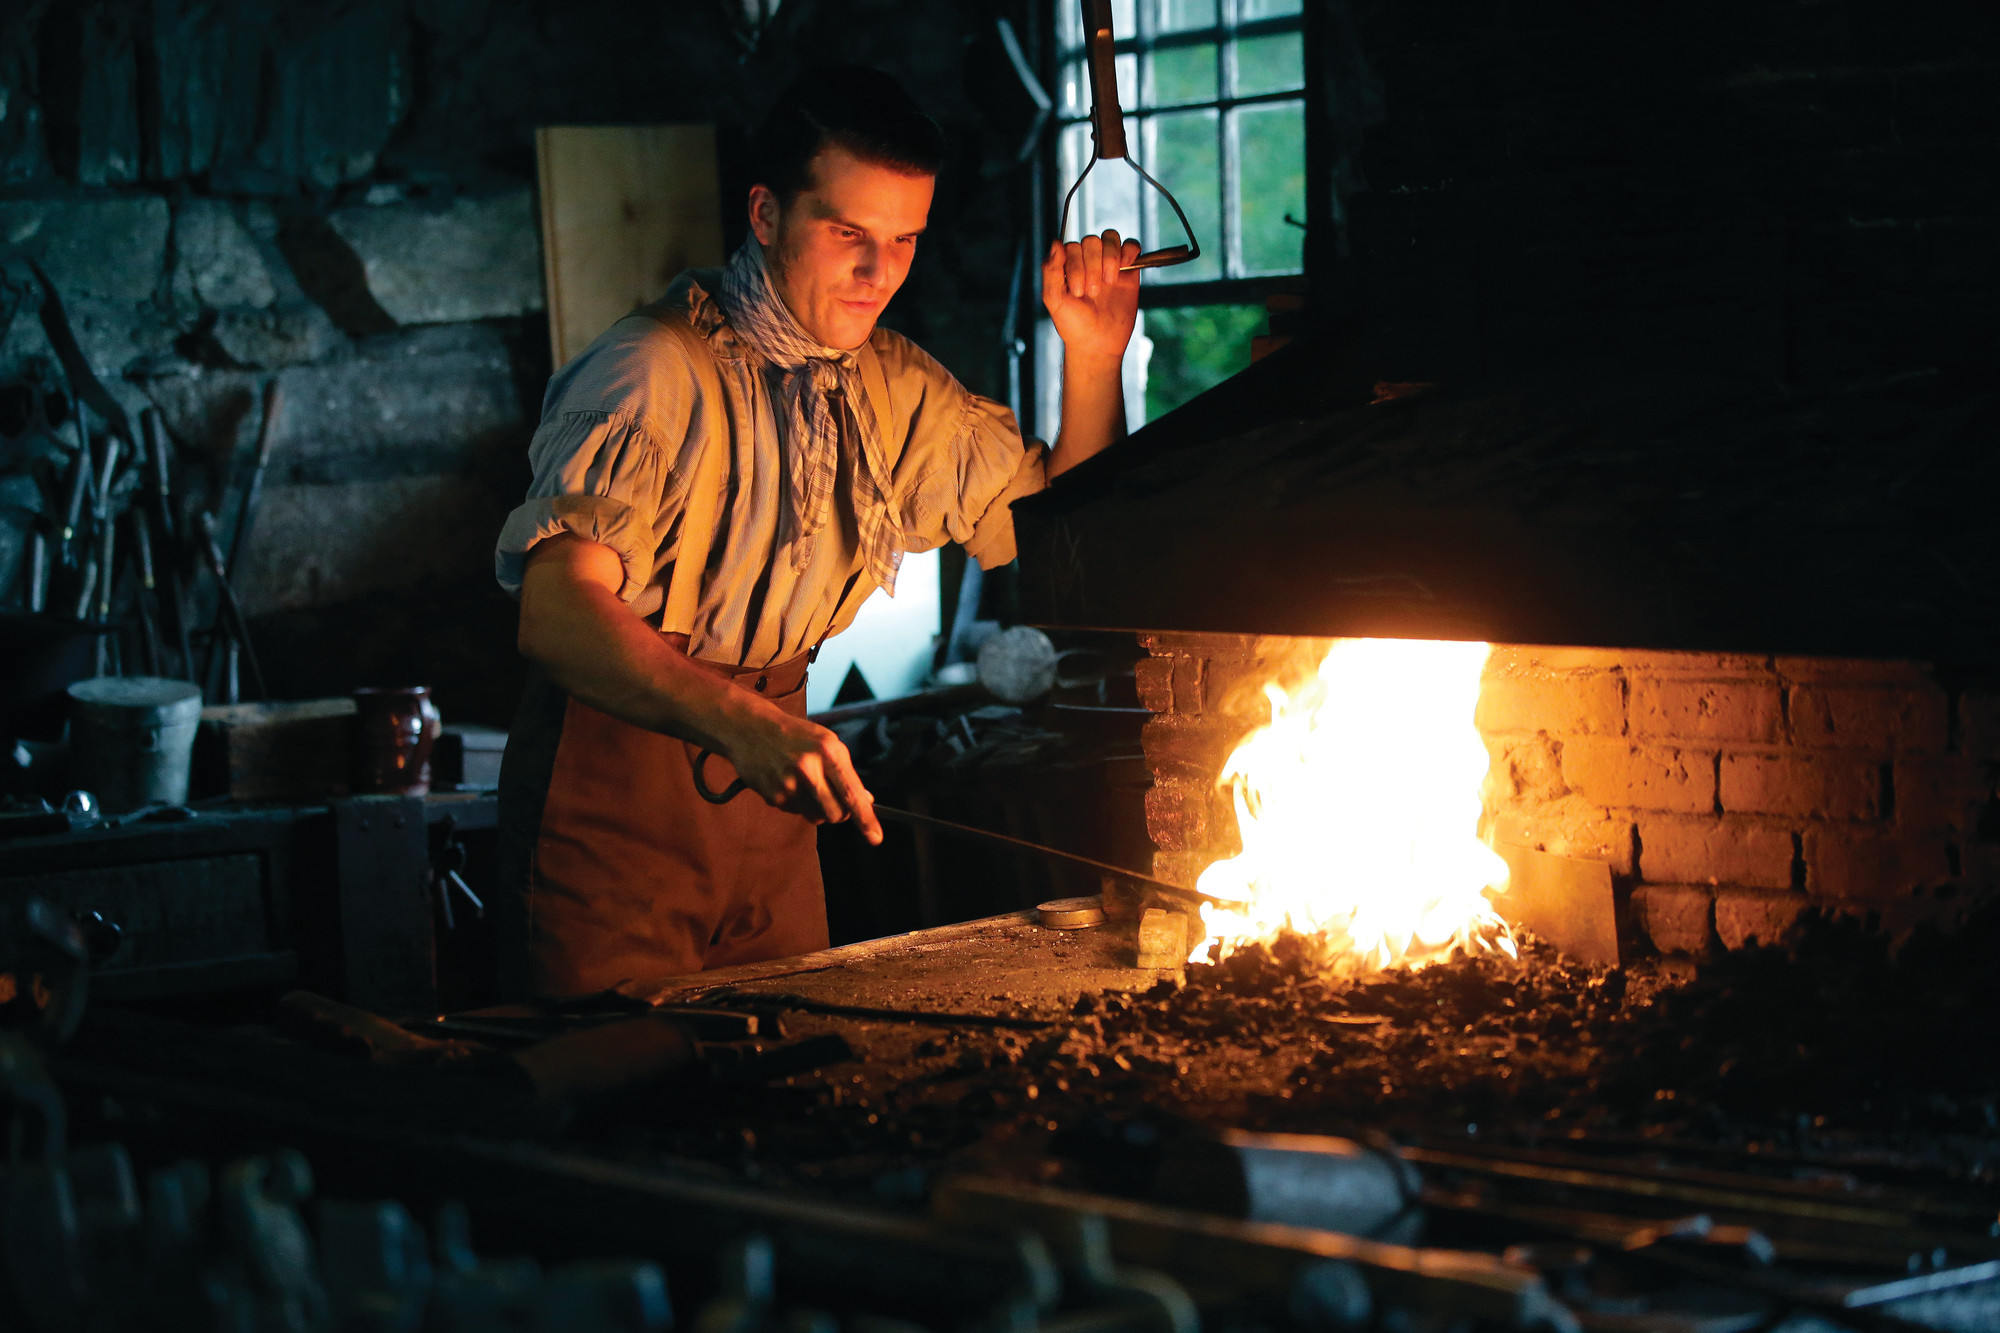 PHOTOS BY THE ASSOCIATED PRESSDerek Heidemann reenacts an 1830s blacksmith at Old Sturbridge Village, in Sturbridge, Massachusetts, on Aug. 22. With a $75,000 grant from the National Endowment for the Humanities, Old Sturbridge Village, a living history museum that depicts life in a small New England town in the 1830s, is taking a deep look at the way it presents the past, including the roles of minorities and women, in an effort to stay relevant to a 21st-century audience.